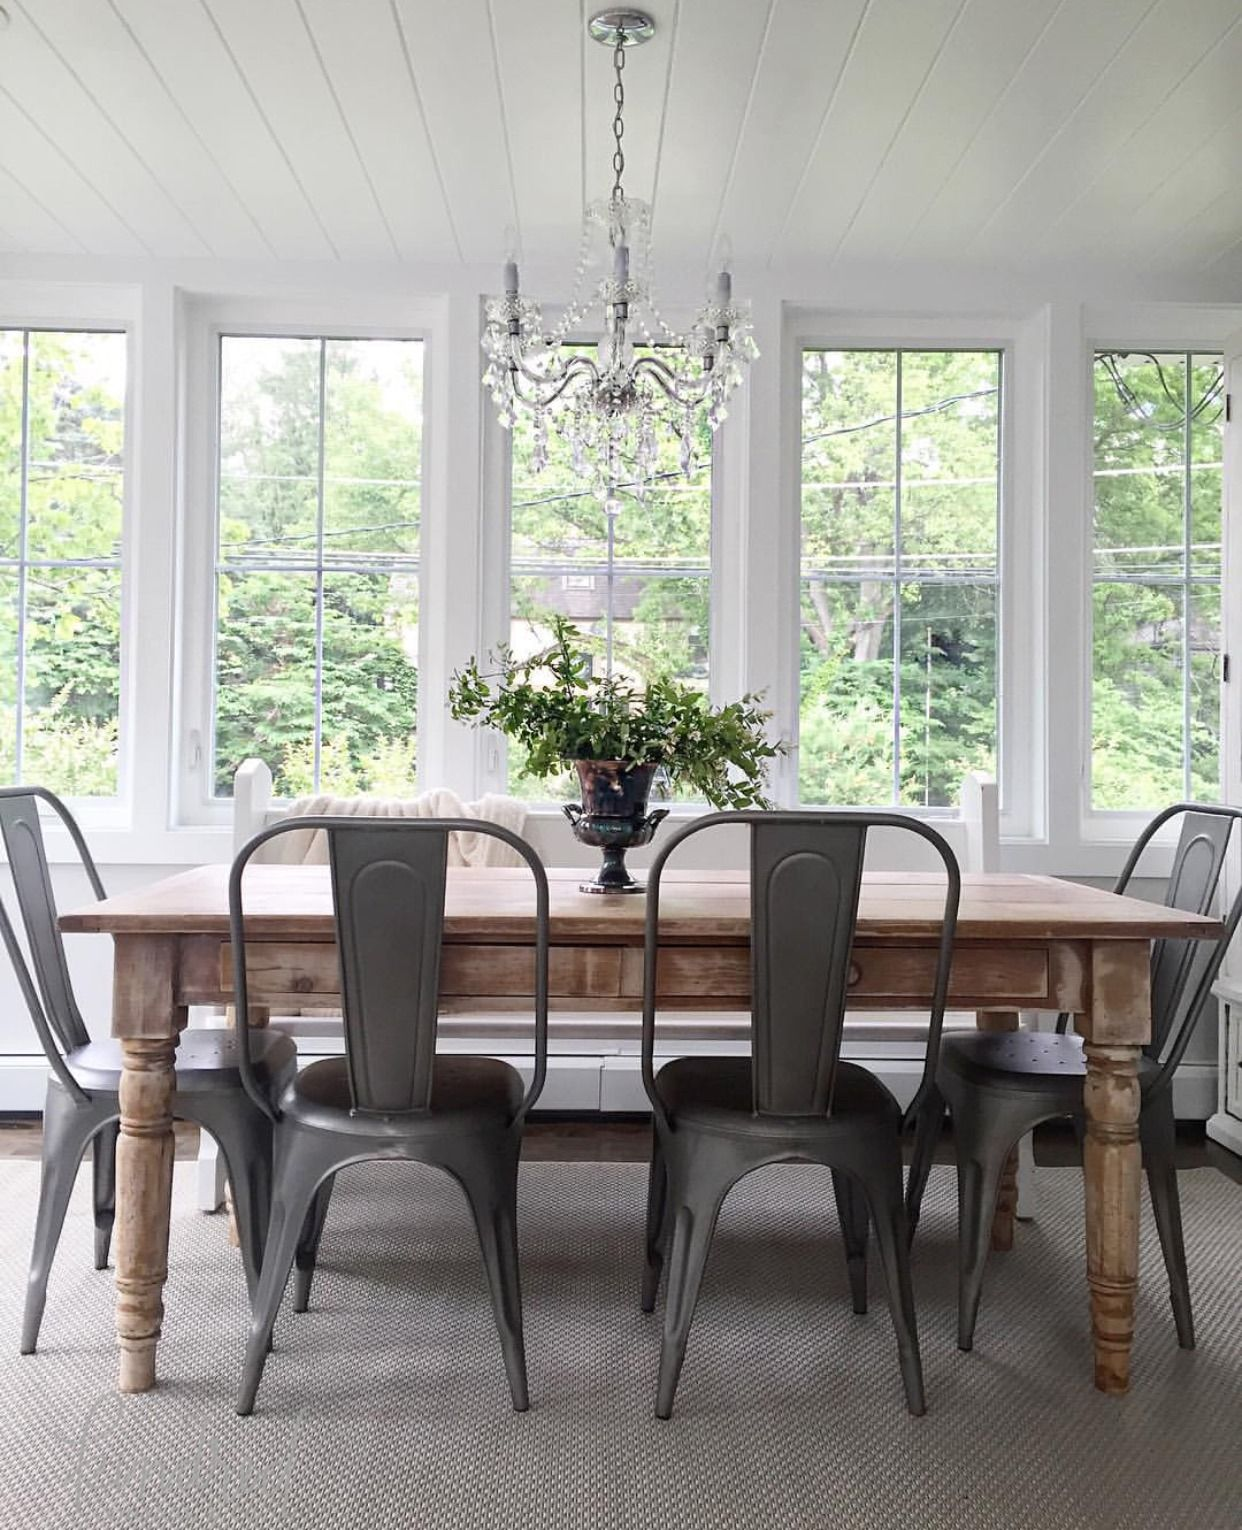 Kindred Vintage, Farmhouse Style   Table Not Chairs